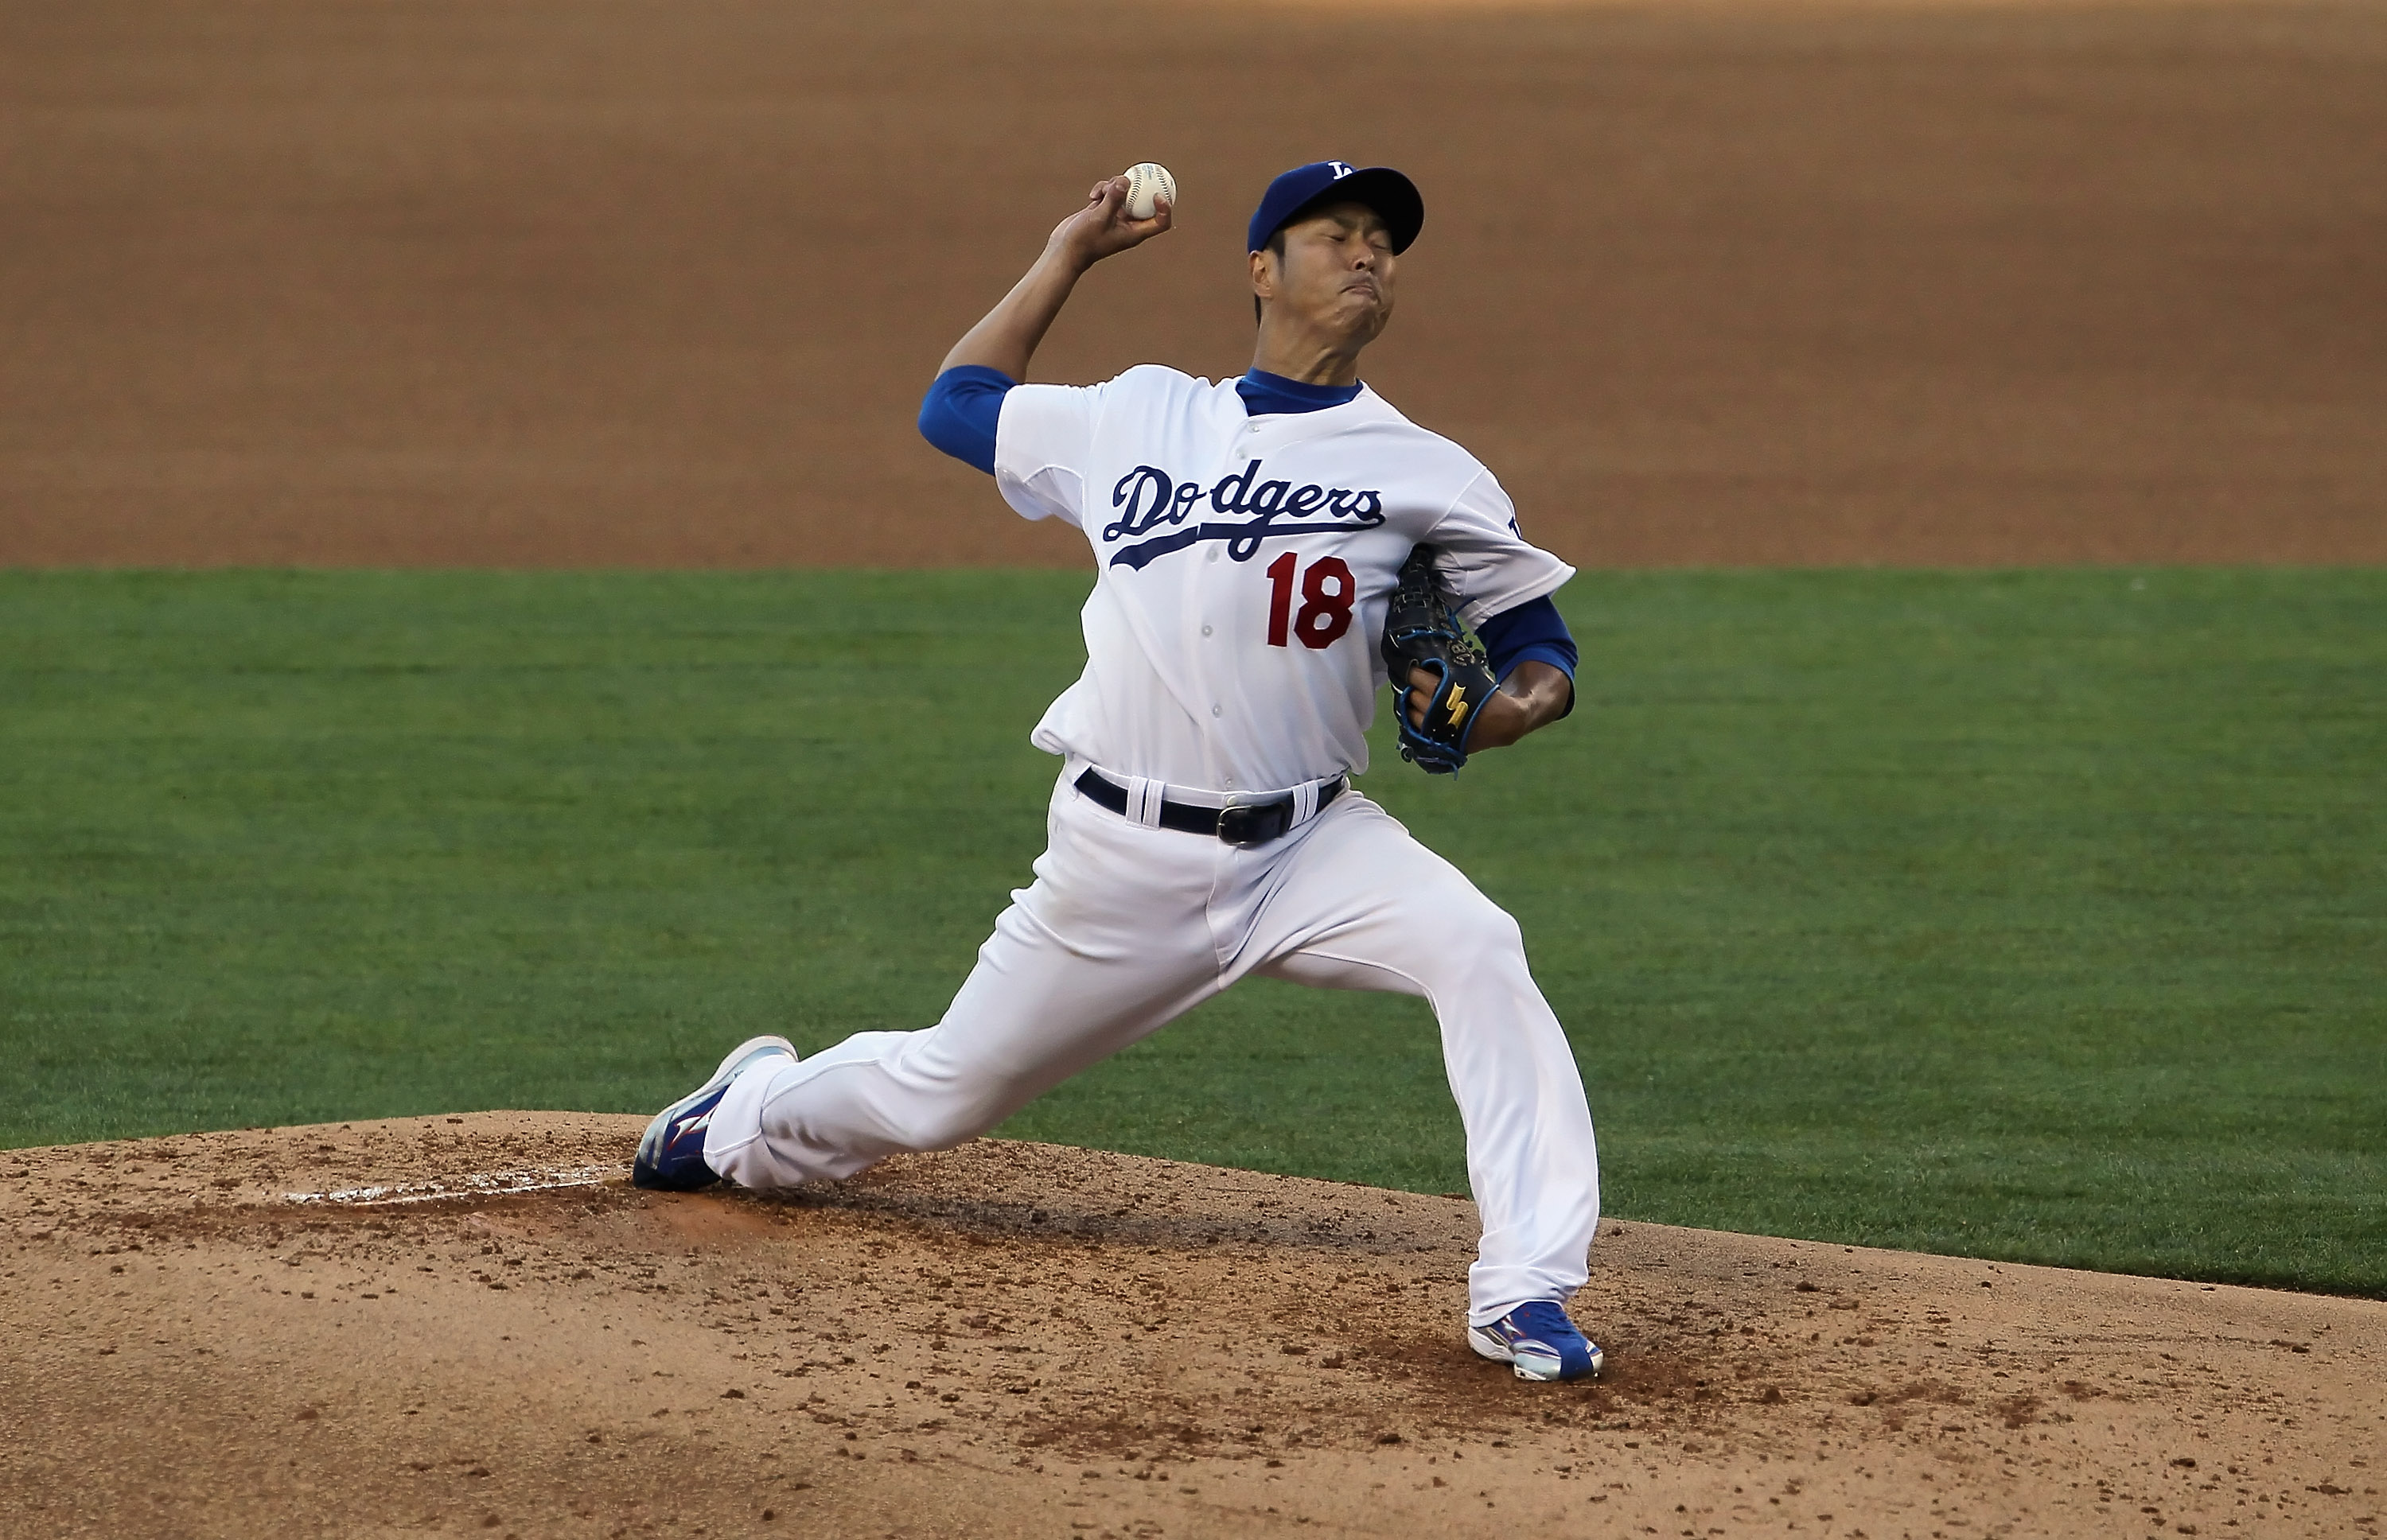 LOS ANGELES, CA - SEPTEMBER 05:  Hiroki Kuroda #18 of the Los Angeles Dodgers pitches in the third inning against the San Francisco Giants at Dodger Stadium on September 5, 2010 in Los Angeles, California. The Giants defeated the Dodgers 3-0.  (Photo by J